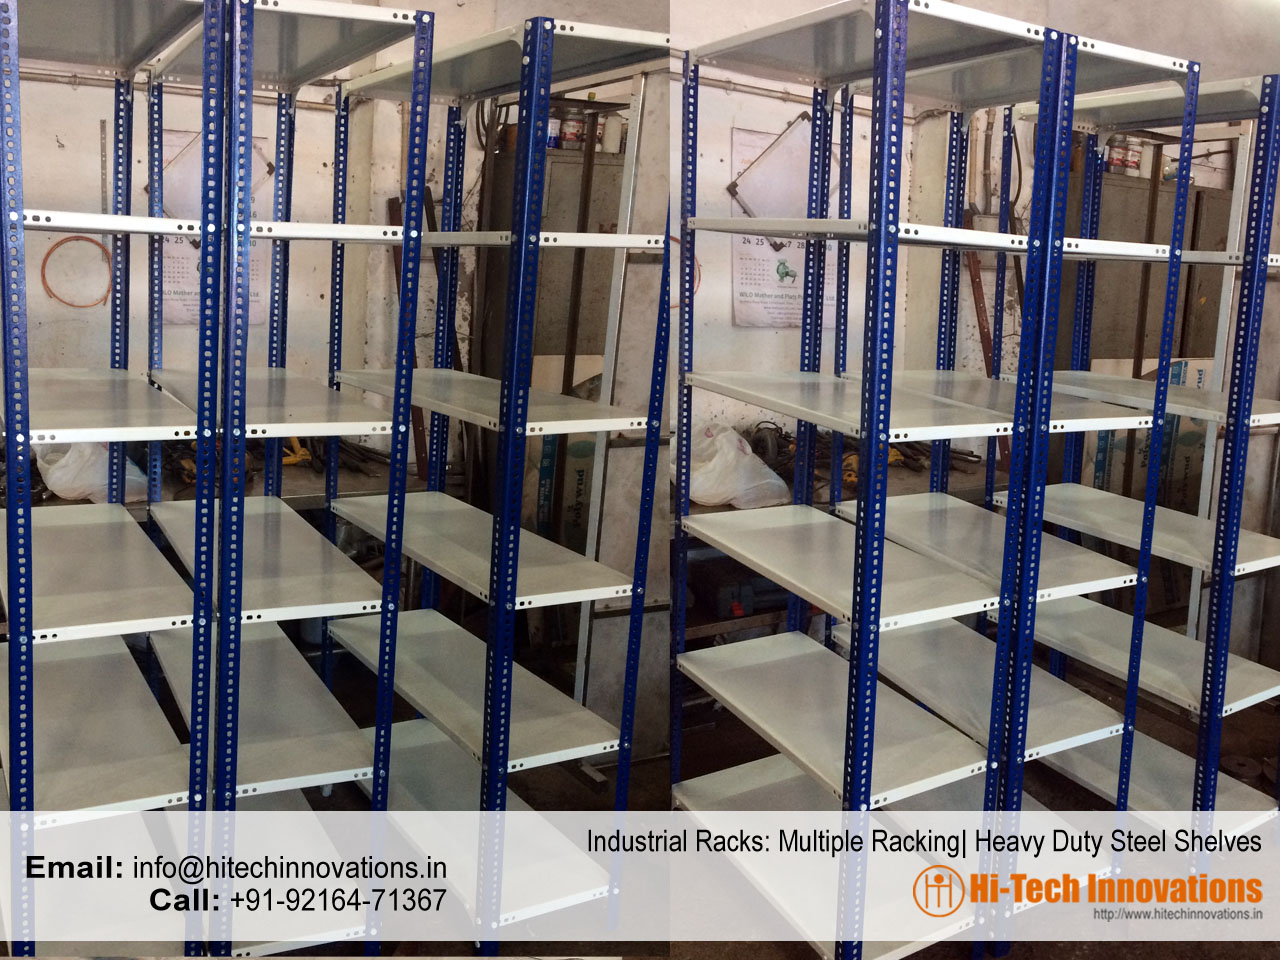 Industrial Racks | Steel Racks | Heavy Duty Shelves